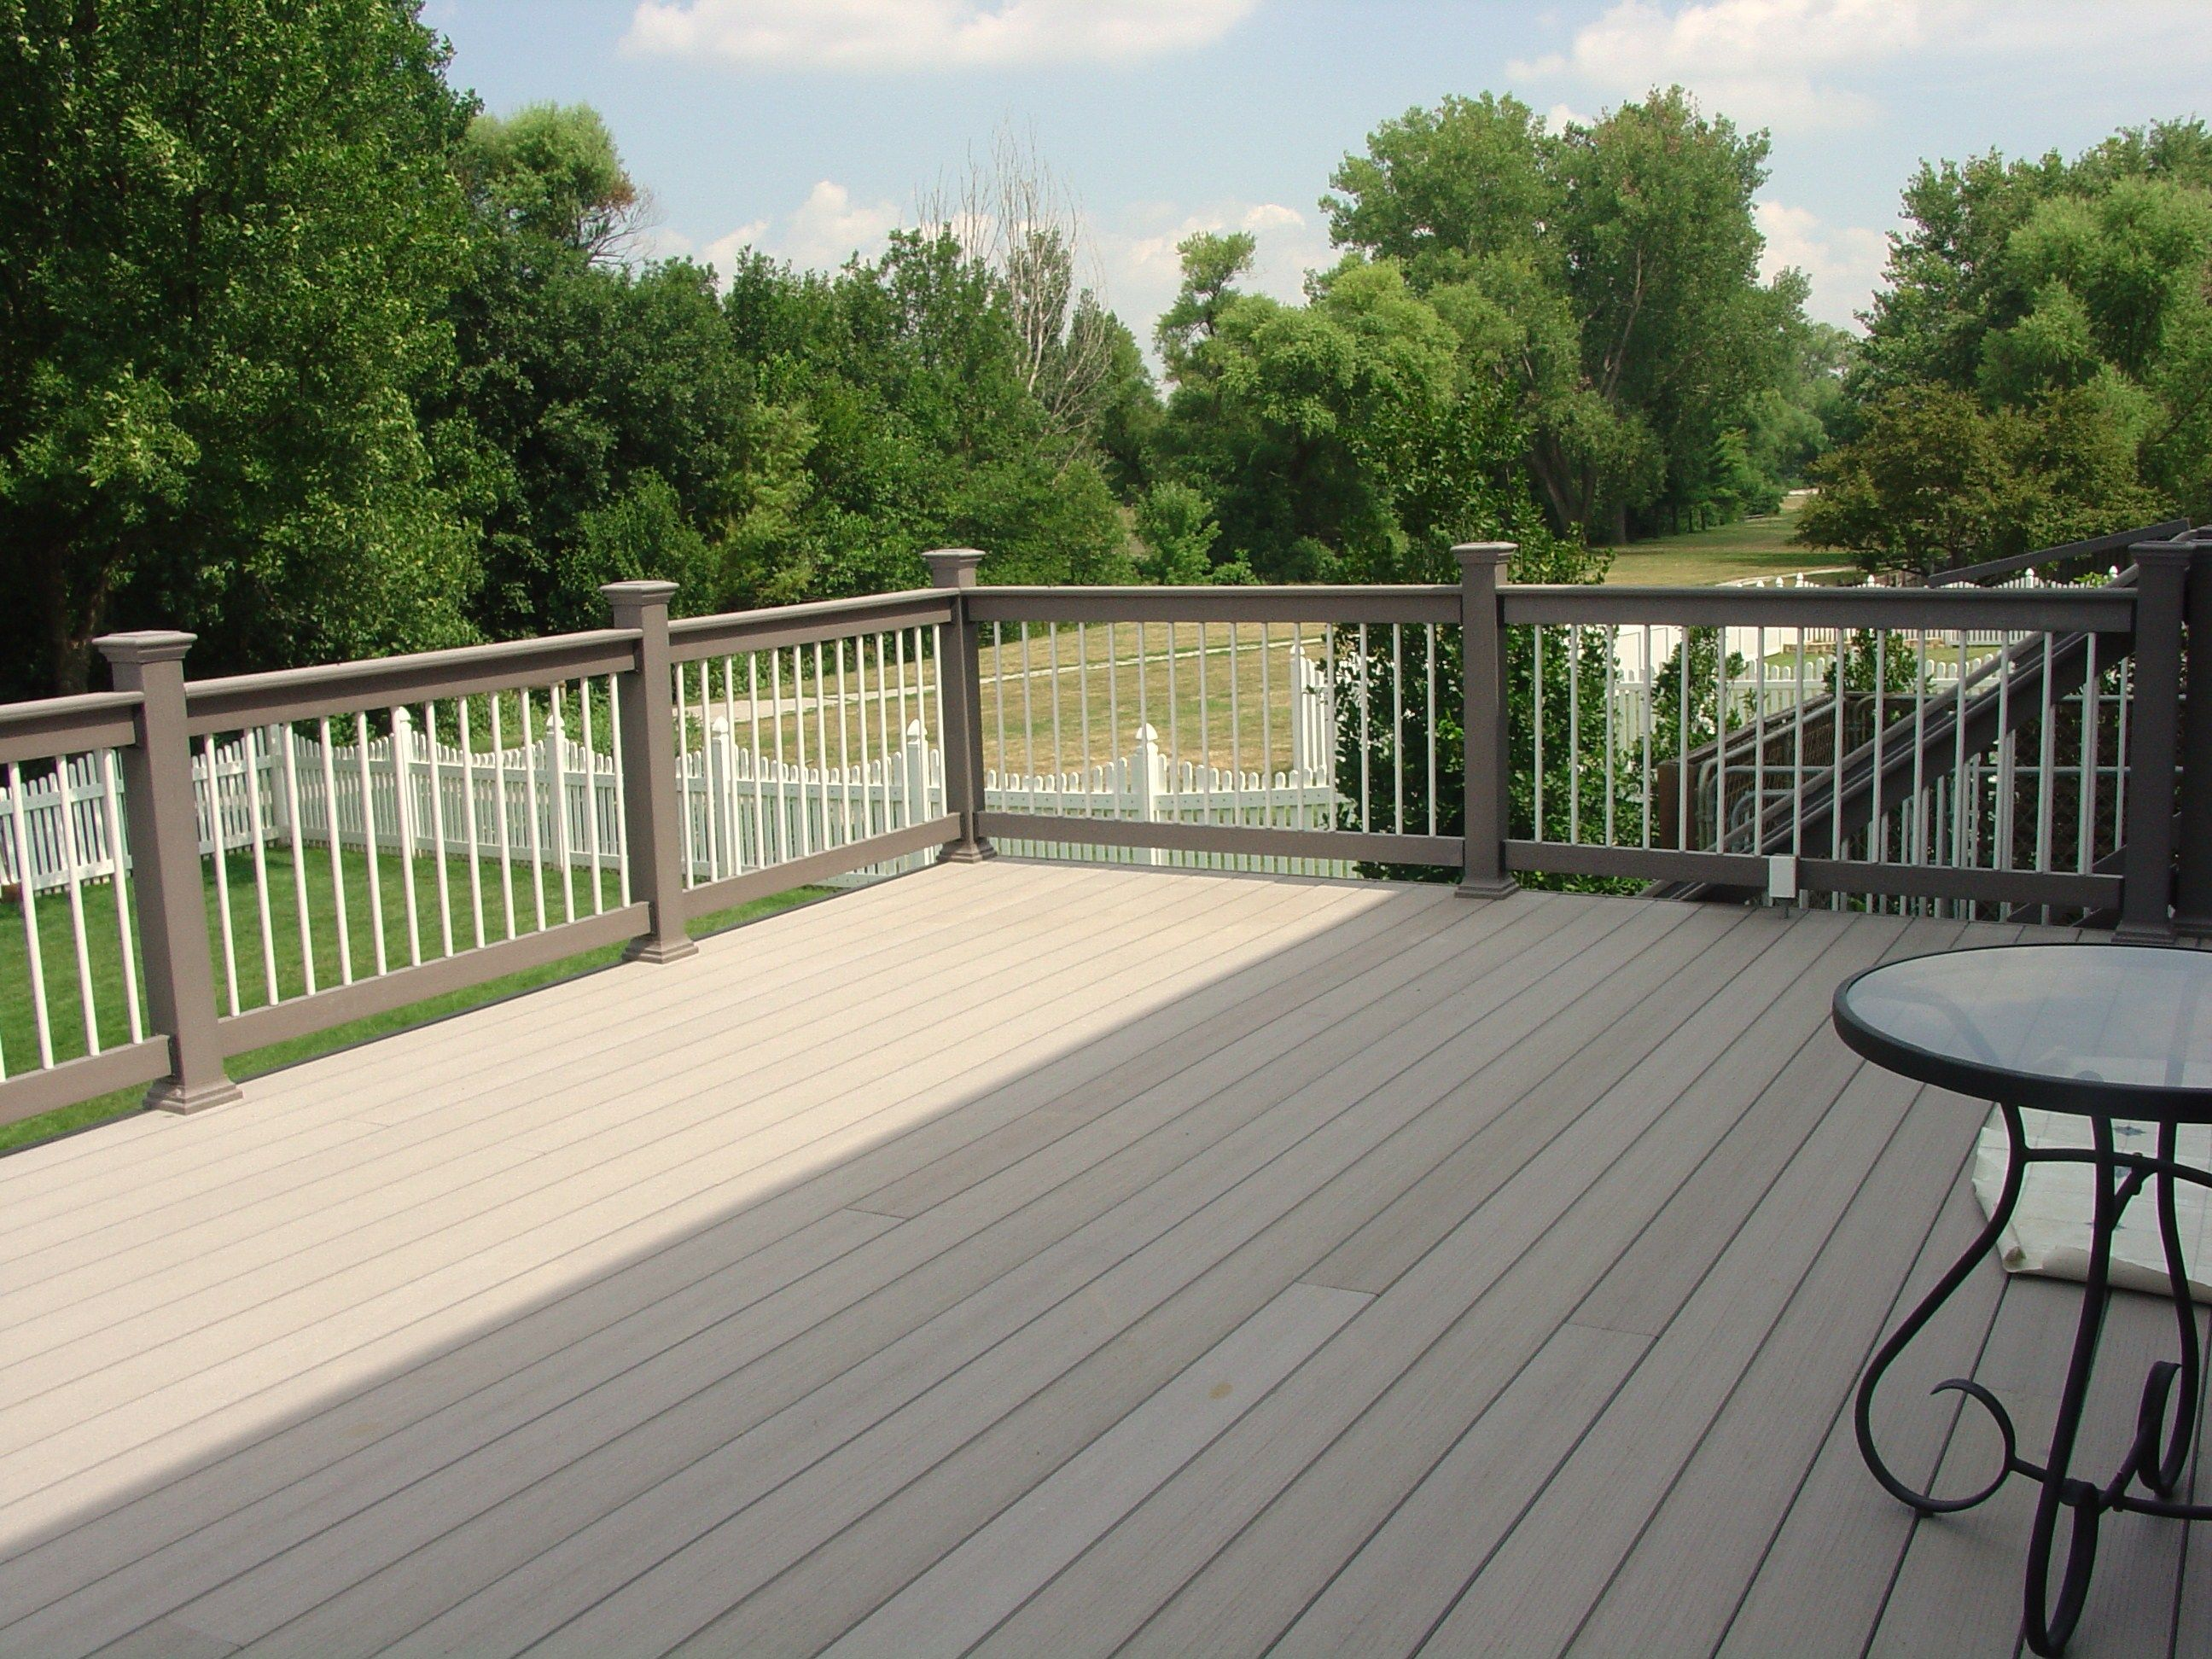 Flooring Darkgray Evergrain Decking Matched With Tan And White